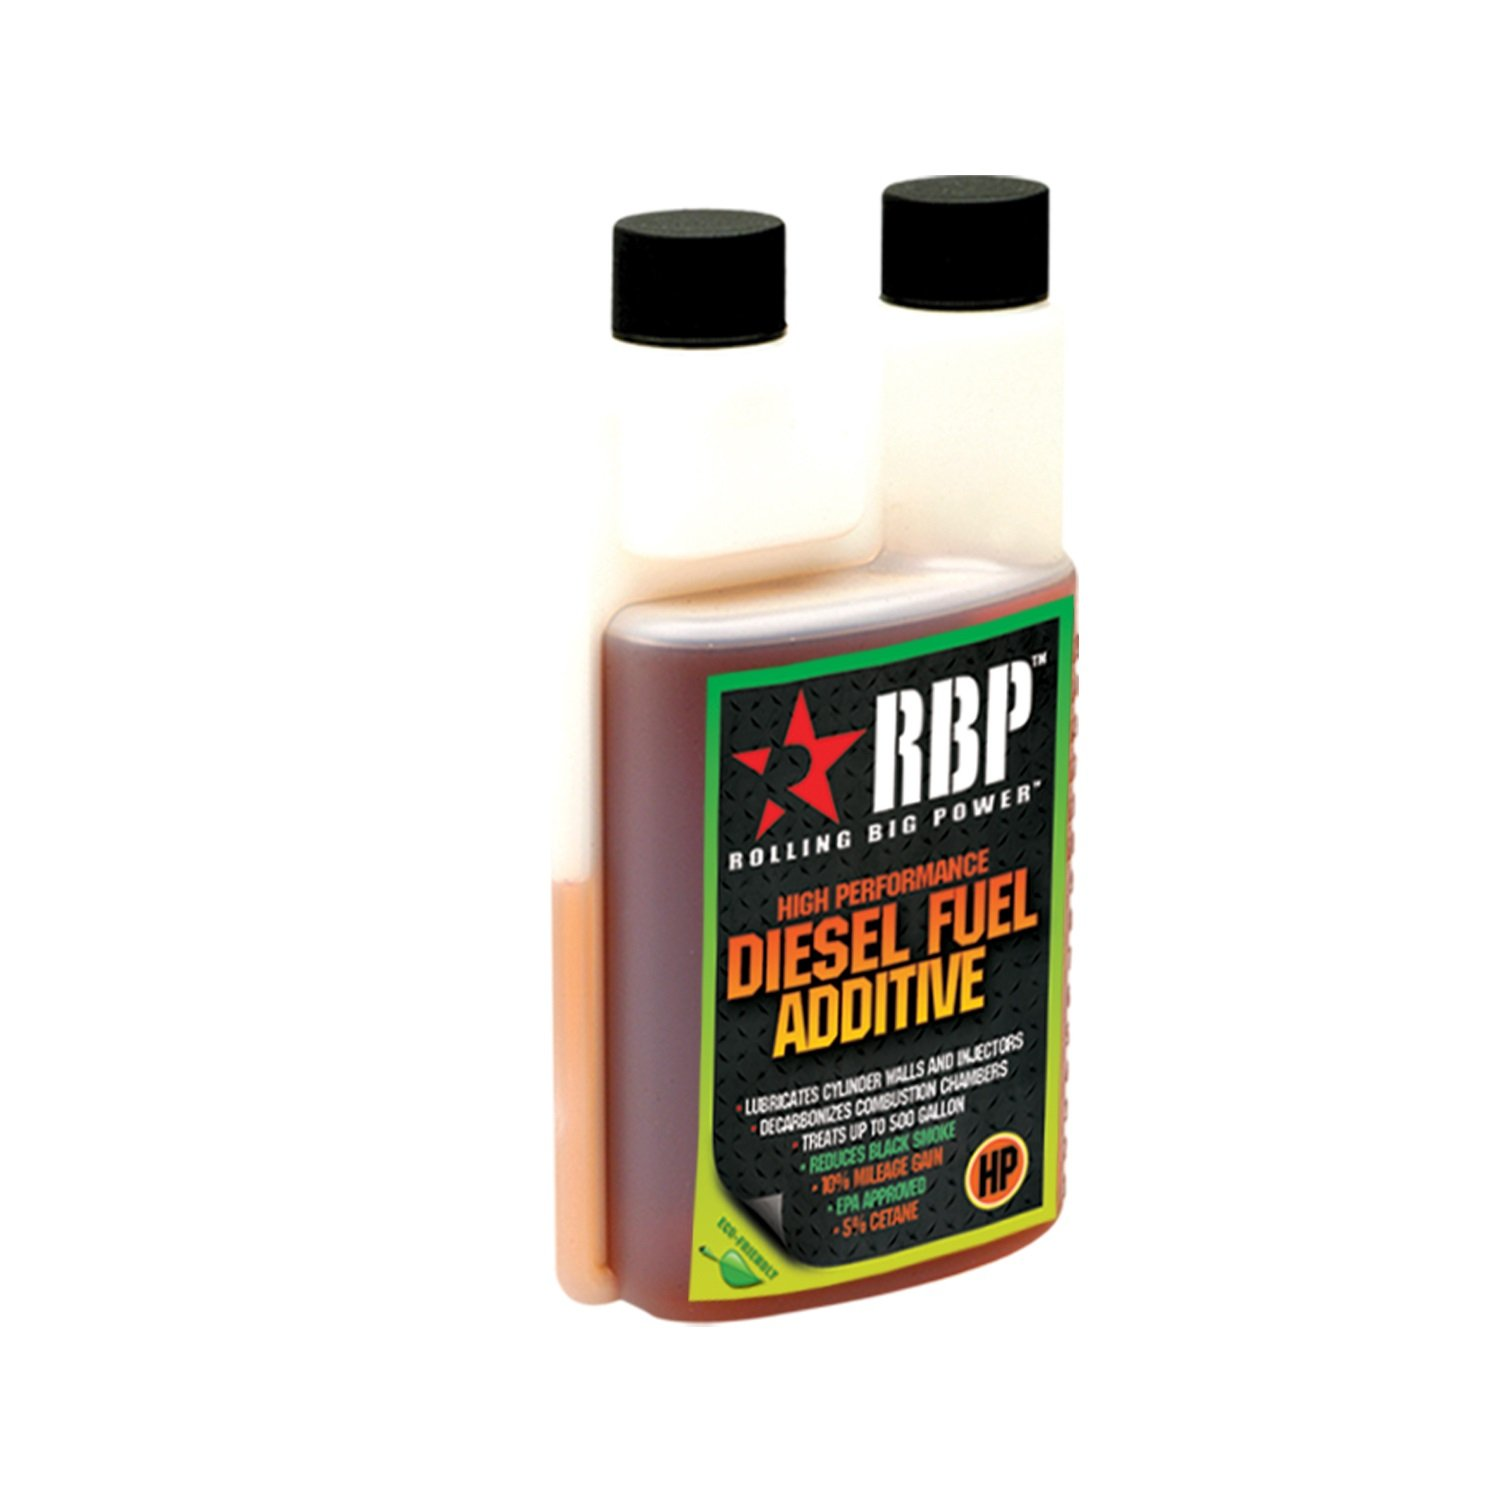 RBP Performance RBP-80001HP High Performance Diesel Fuel Additive For Diesel Vehicles Only w/Cetane 16 oz. Treats Up To 500 Gallons High Performance Diesel Fuel Additive